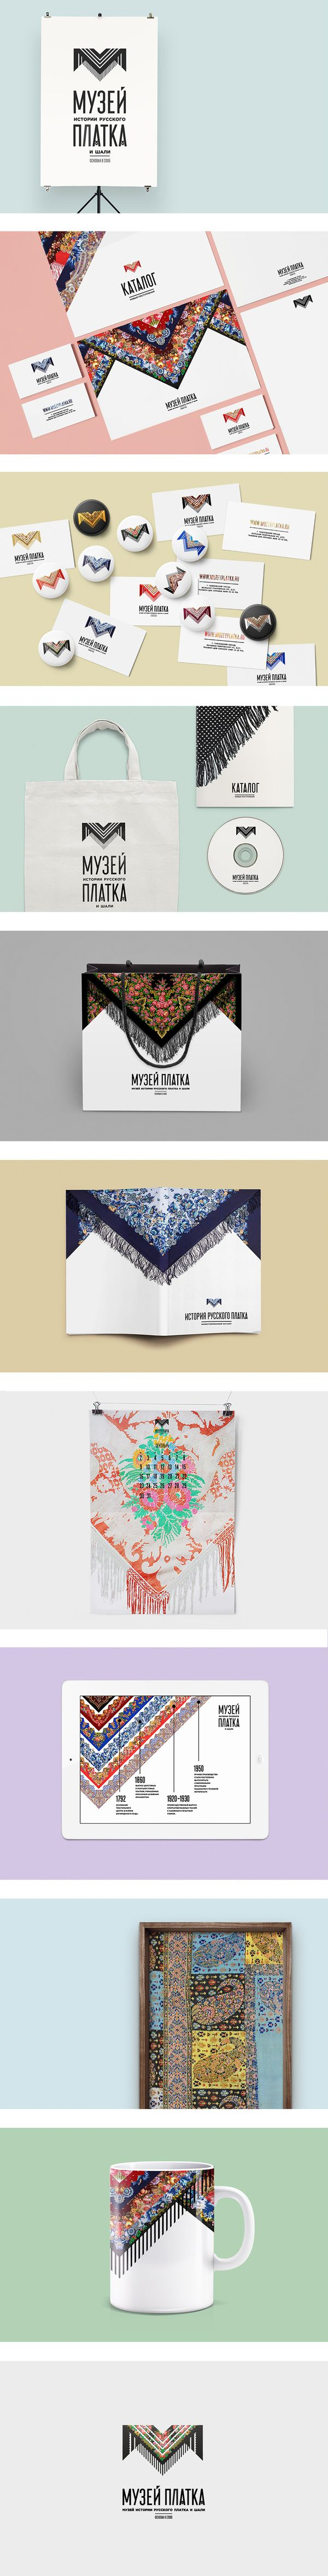 SHAWL MUSEUM by Vova Lifanov, via Behance Beautiful #packaging #branding #marketing PD